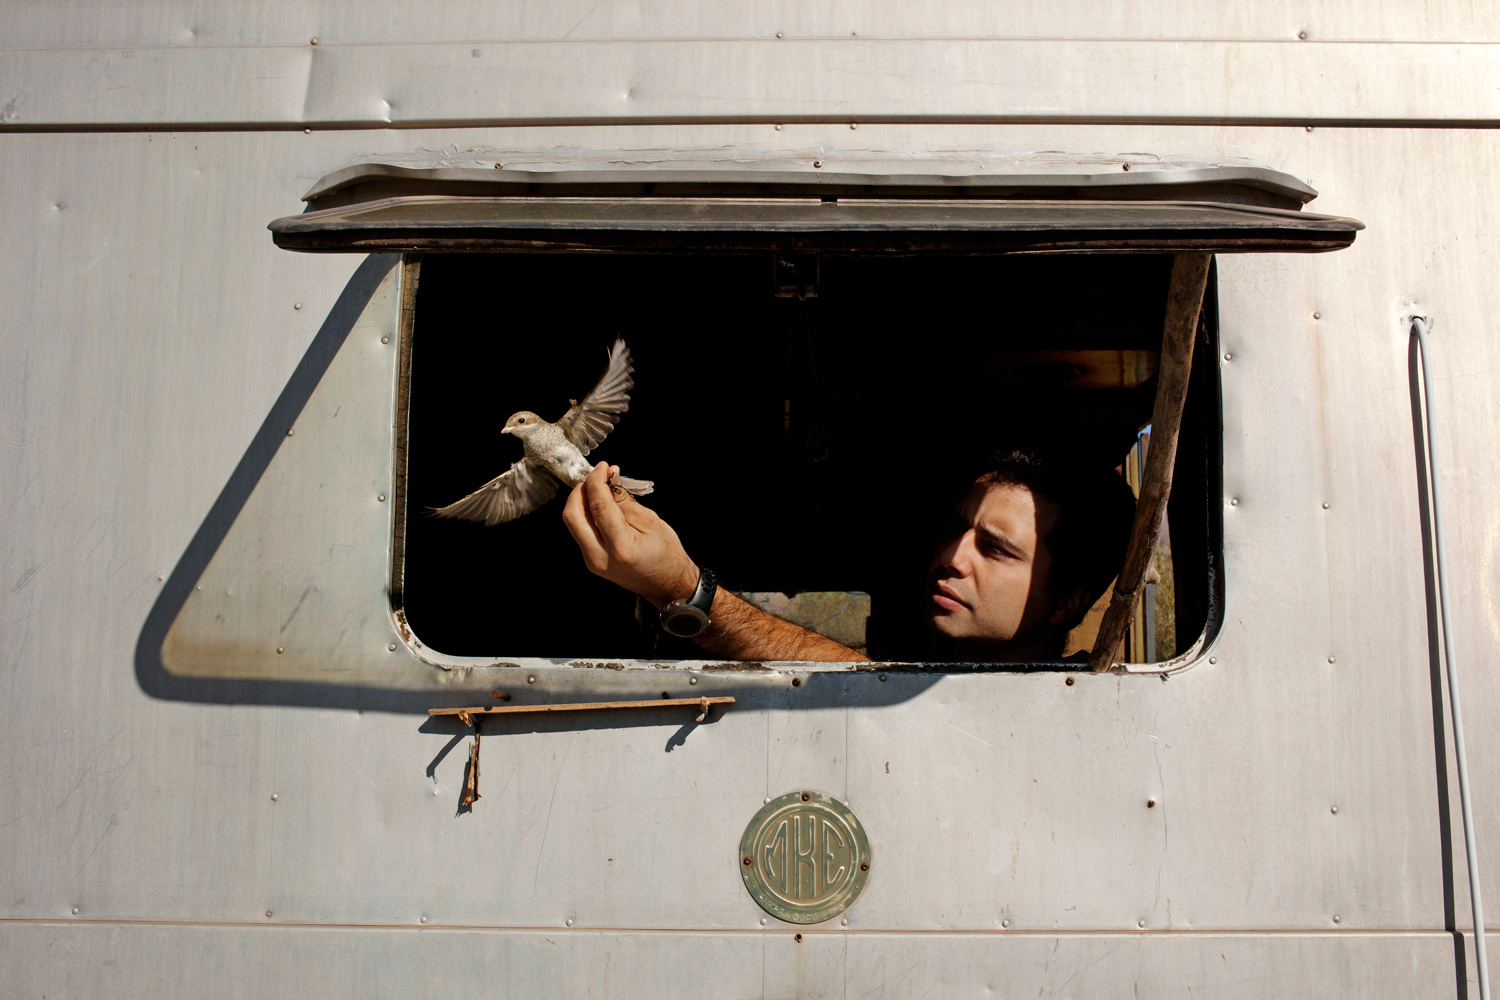 October 2, 2011. Ornithologist Cagan Sekercioglu prepares to release a songbird after collecting data and placing a metal tracking bracelet on its foot.